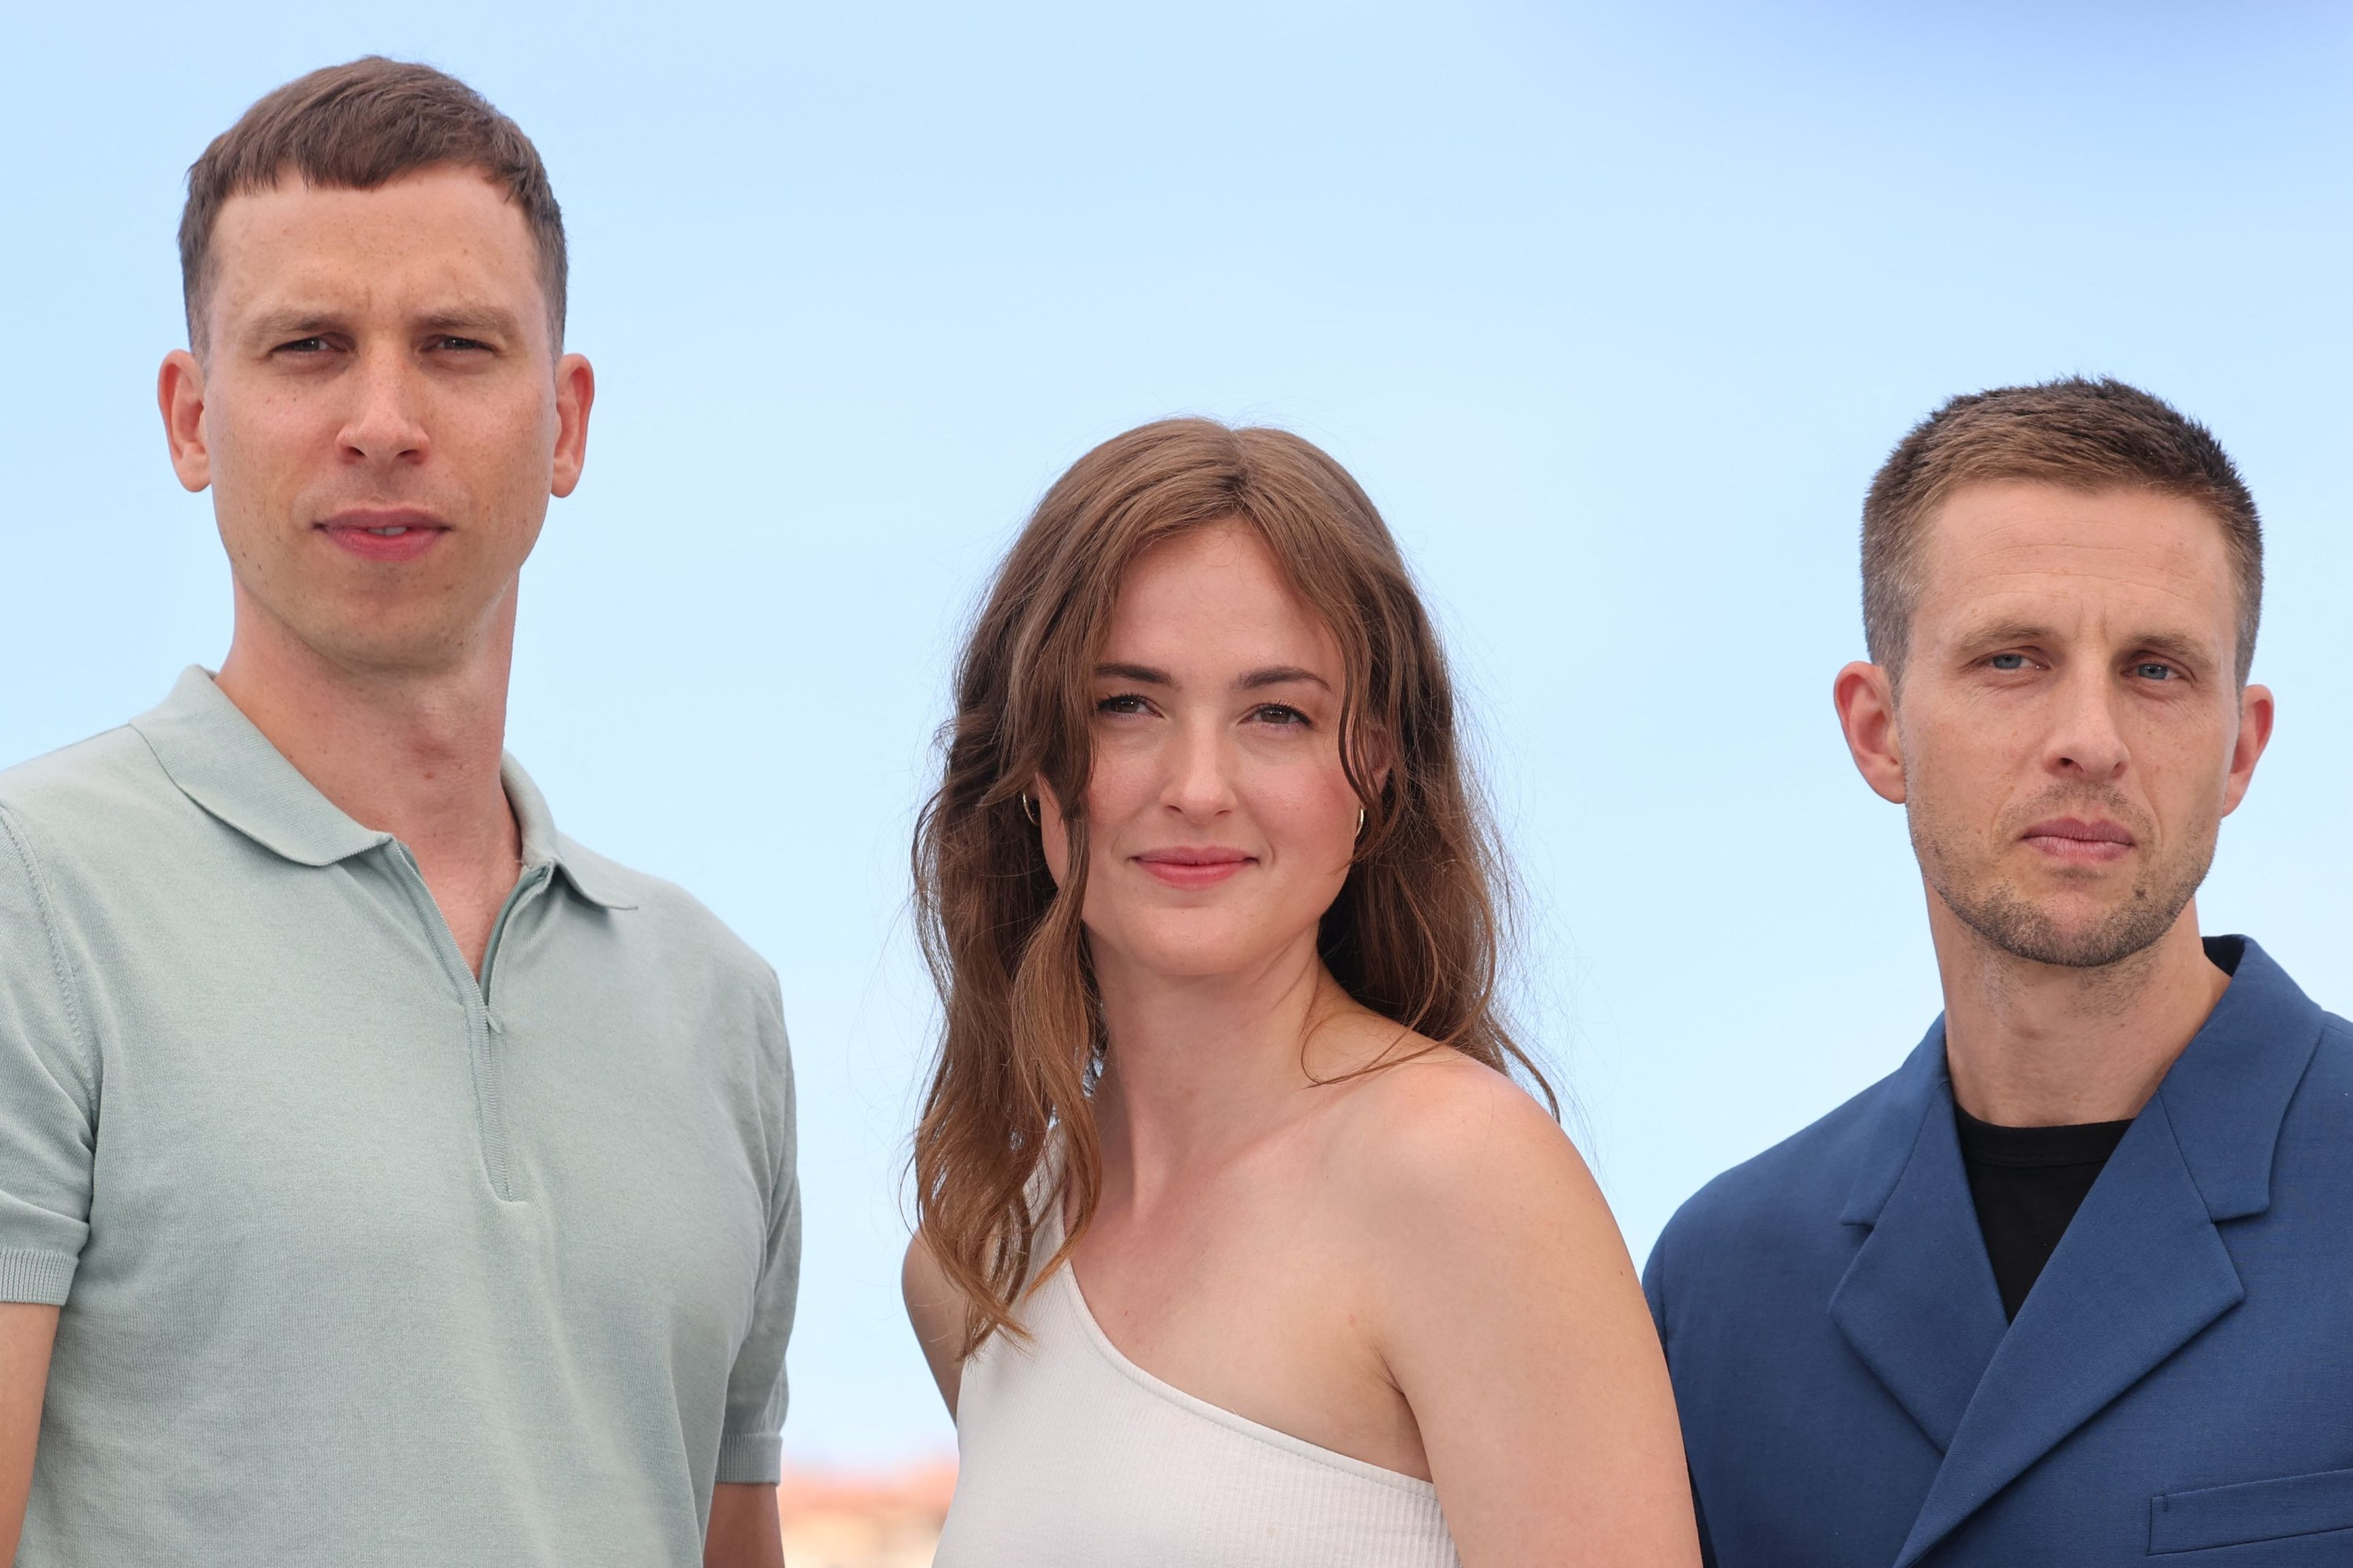 """Norwegian actors Herbert Nordrum (L), Renate Reinsve (C) and Anders Danielsen Lie pose during a photocall for the film """"Verdens Verste Menneske"""" (The Worst Person In The World) at the 74th Cannes Film Festival in Cannes, France, July 9, 2021. (AFP)"""